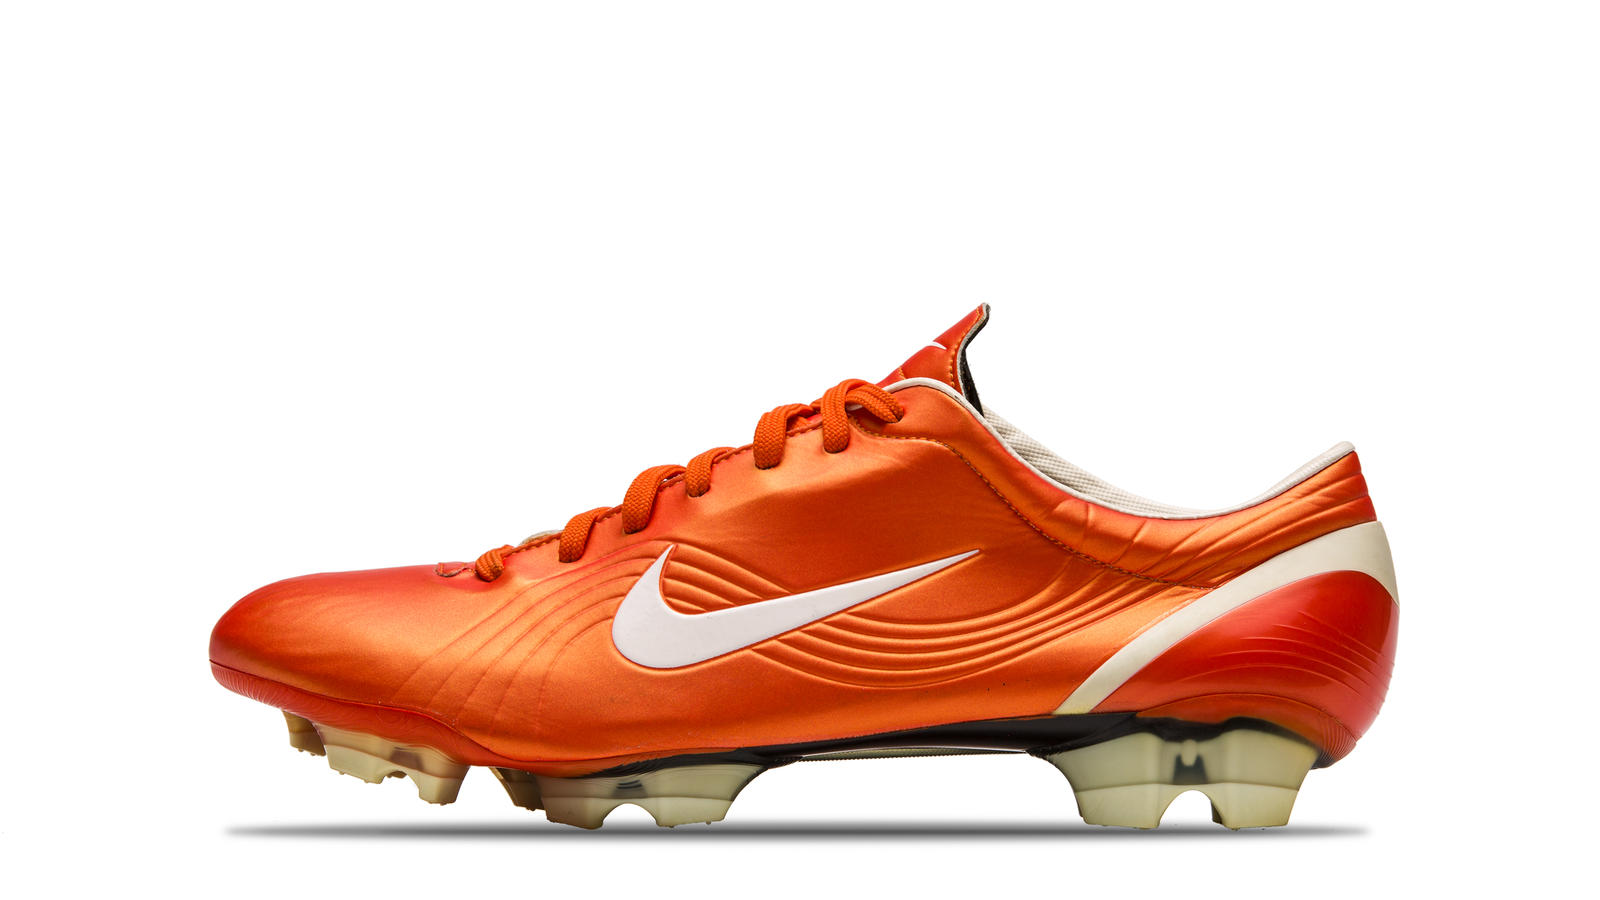 new product 9fc58 4fdab 2003 Mercurial Vapor Orange